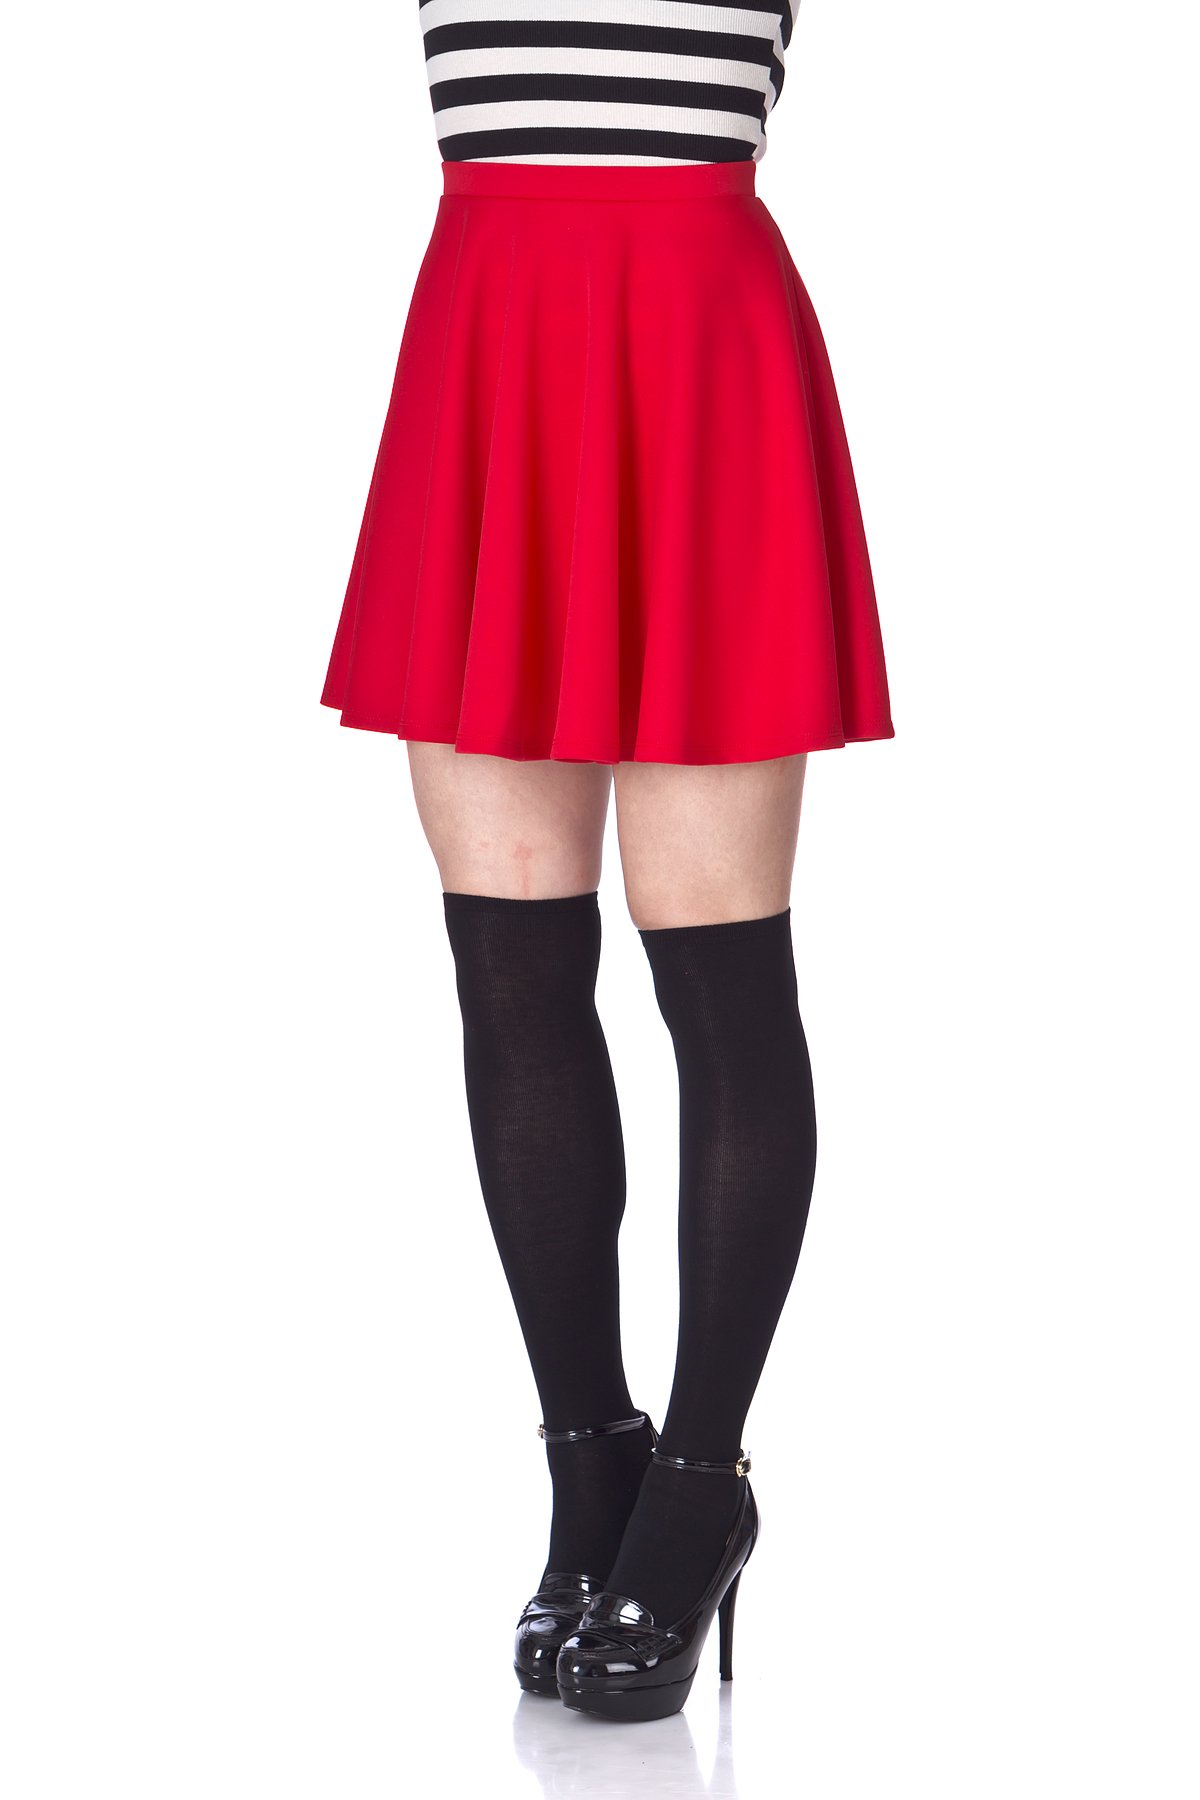 Flouncy High Waist A line Full Flared Circle Swing Dance Party Casual Skater Short Mini Skirt Red 06 1